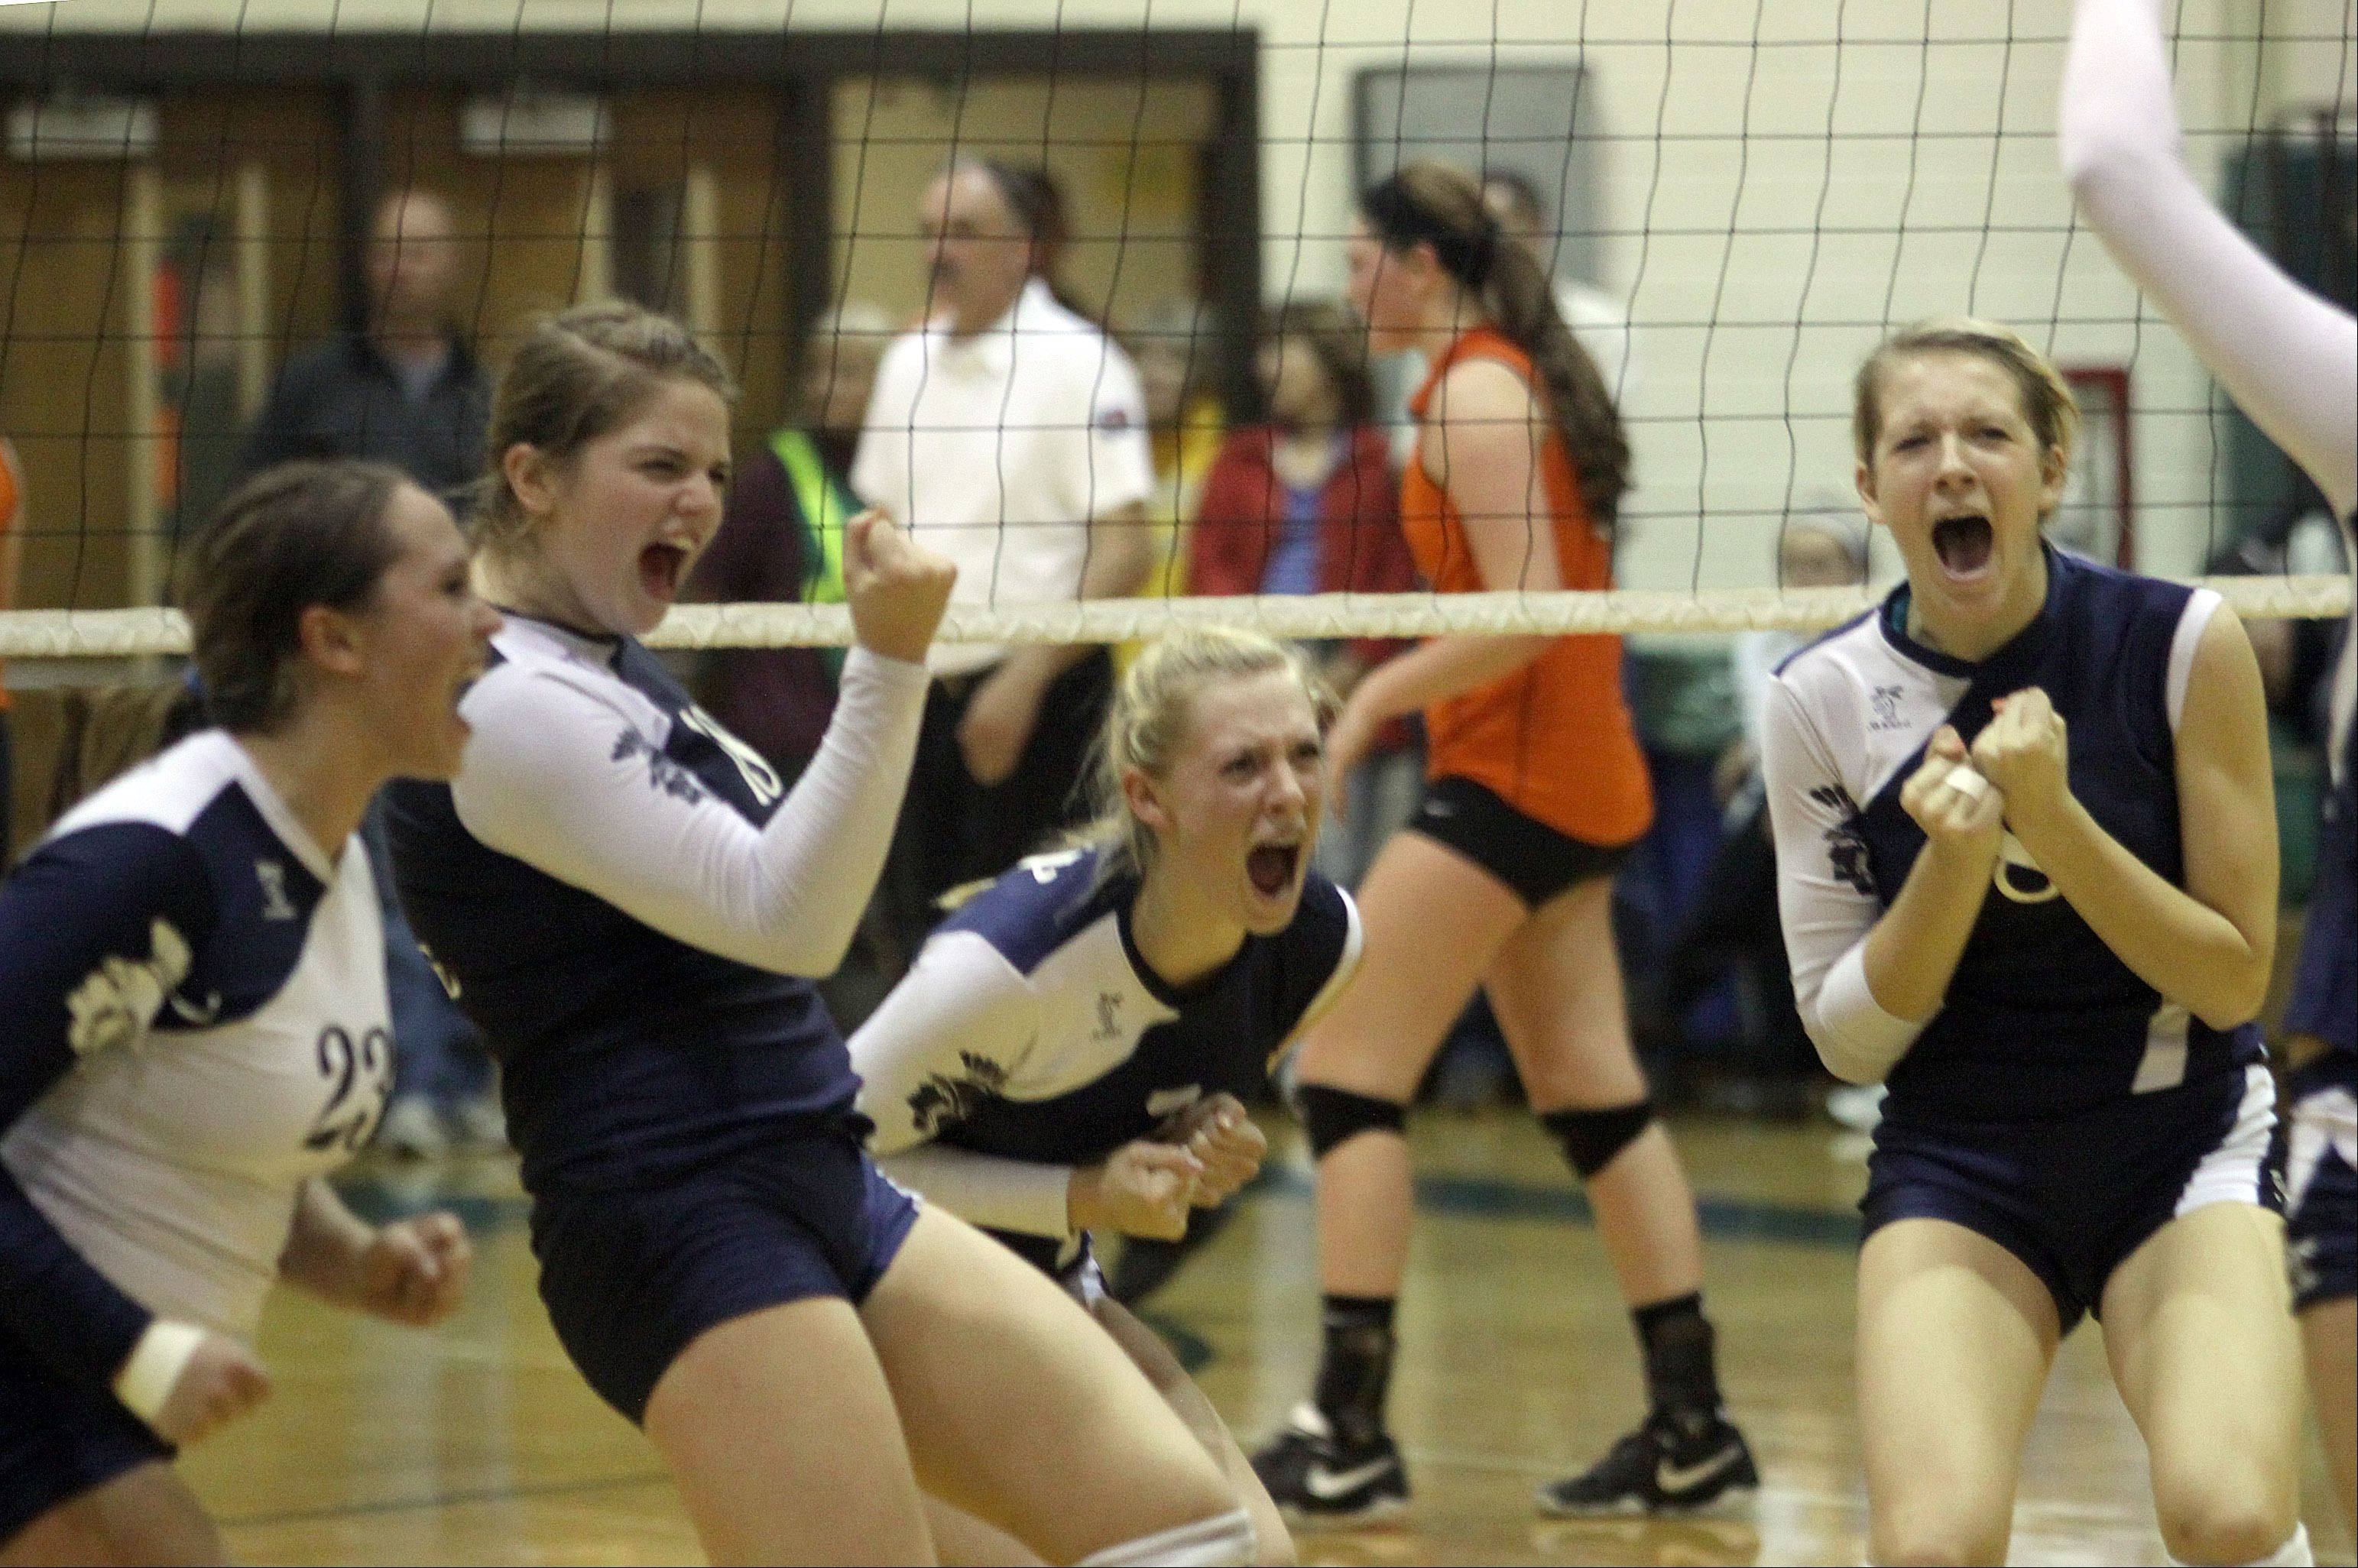 Cary-Grove players, from left, Micah Duzey, Ally Vasquez, Morgan Lee, and Abby Schebel celebrate a regional game victory over Crystal Lake Central at Crystal Lake South High School on Monday night.